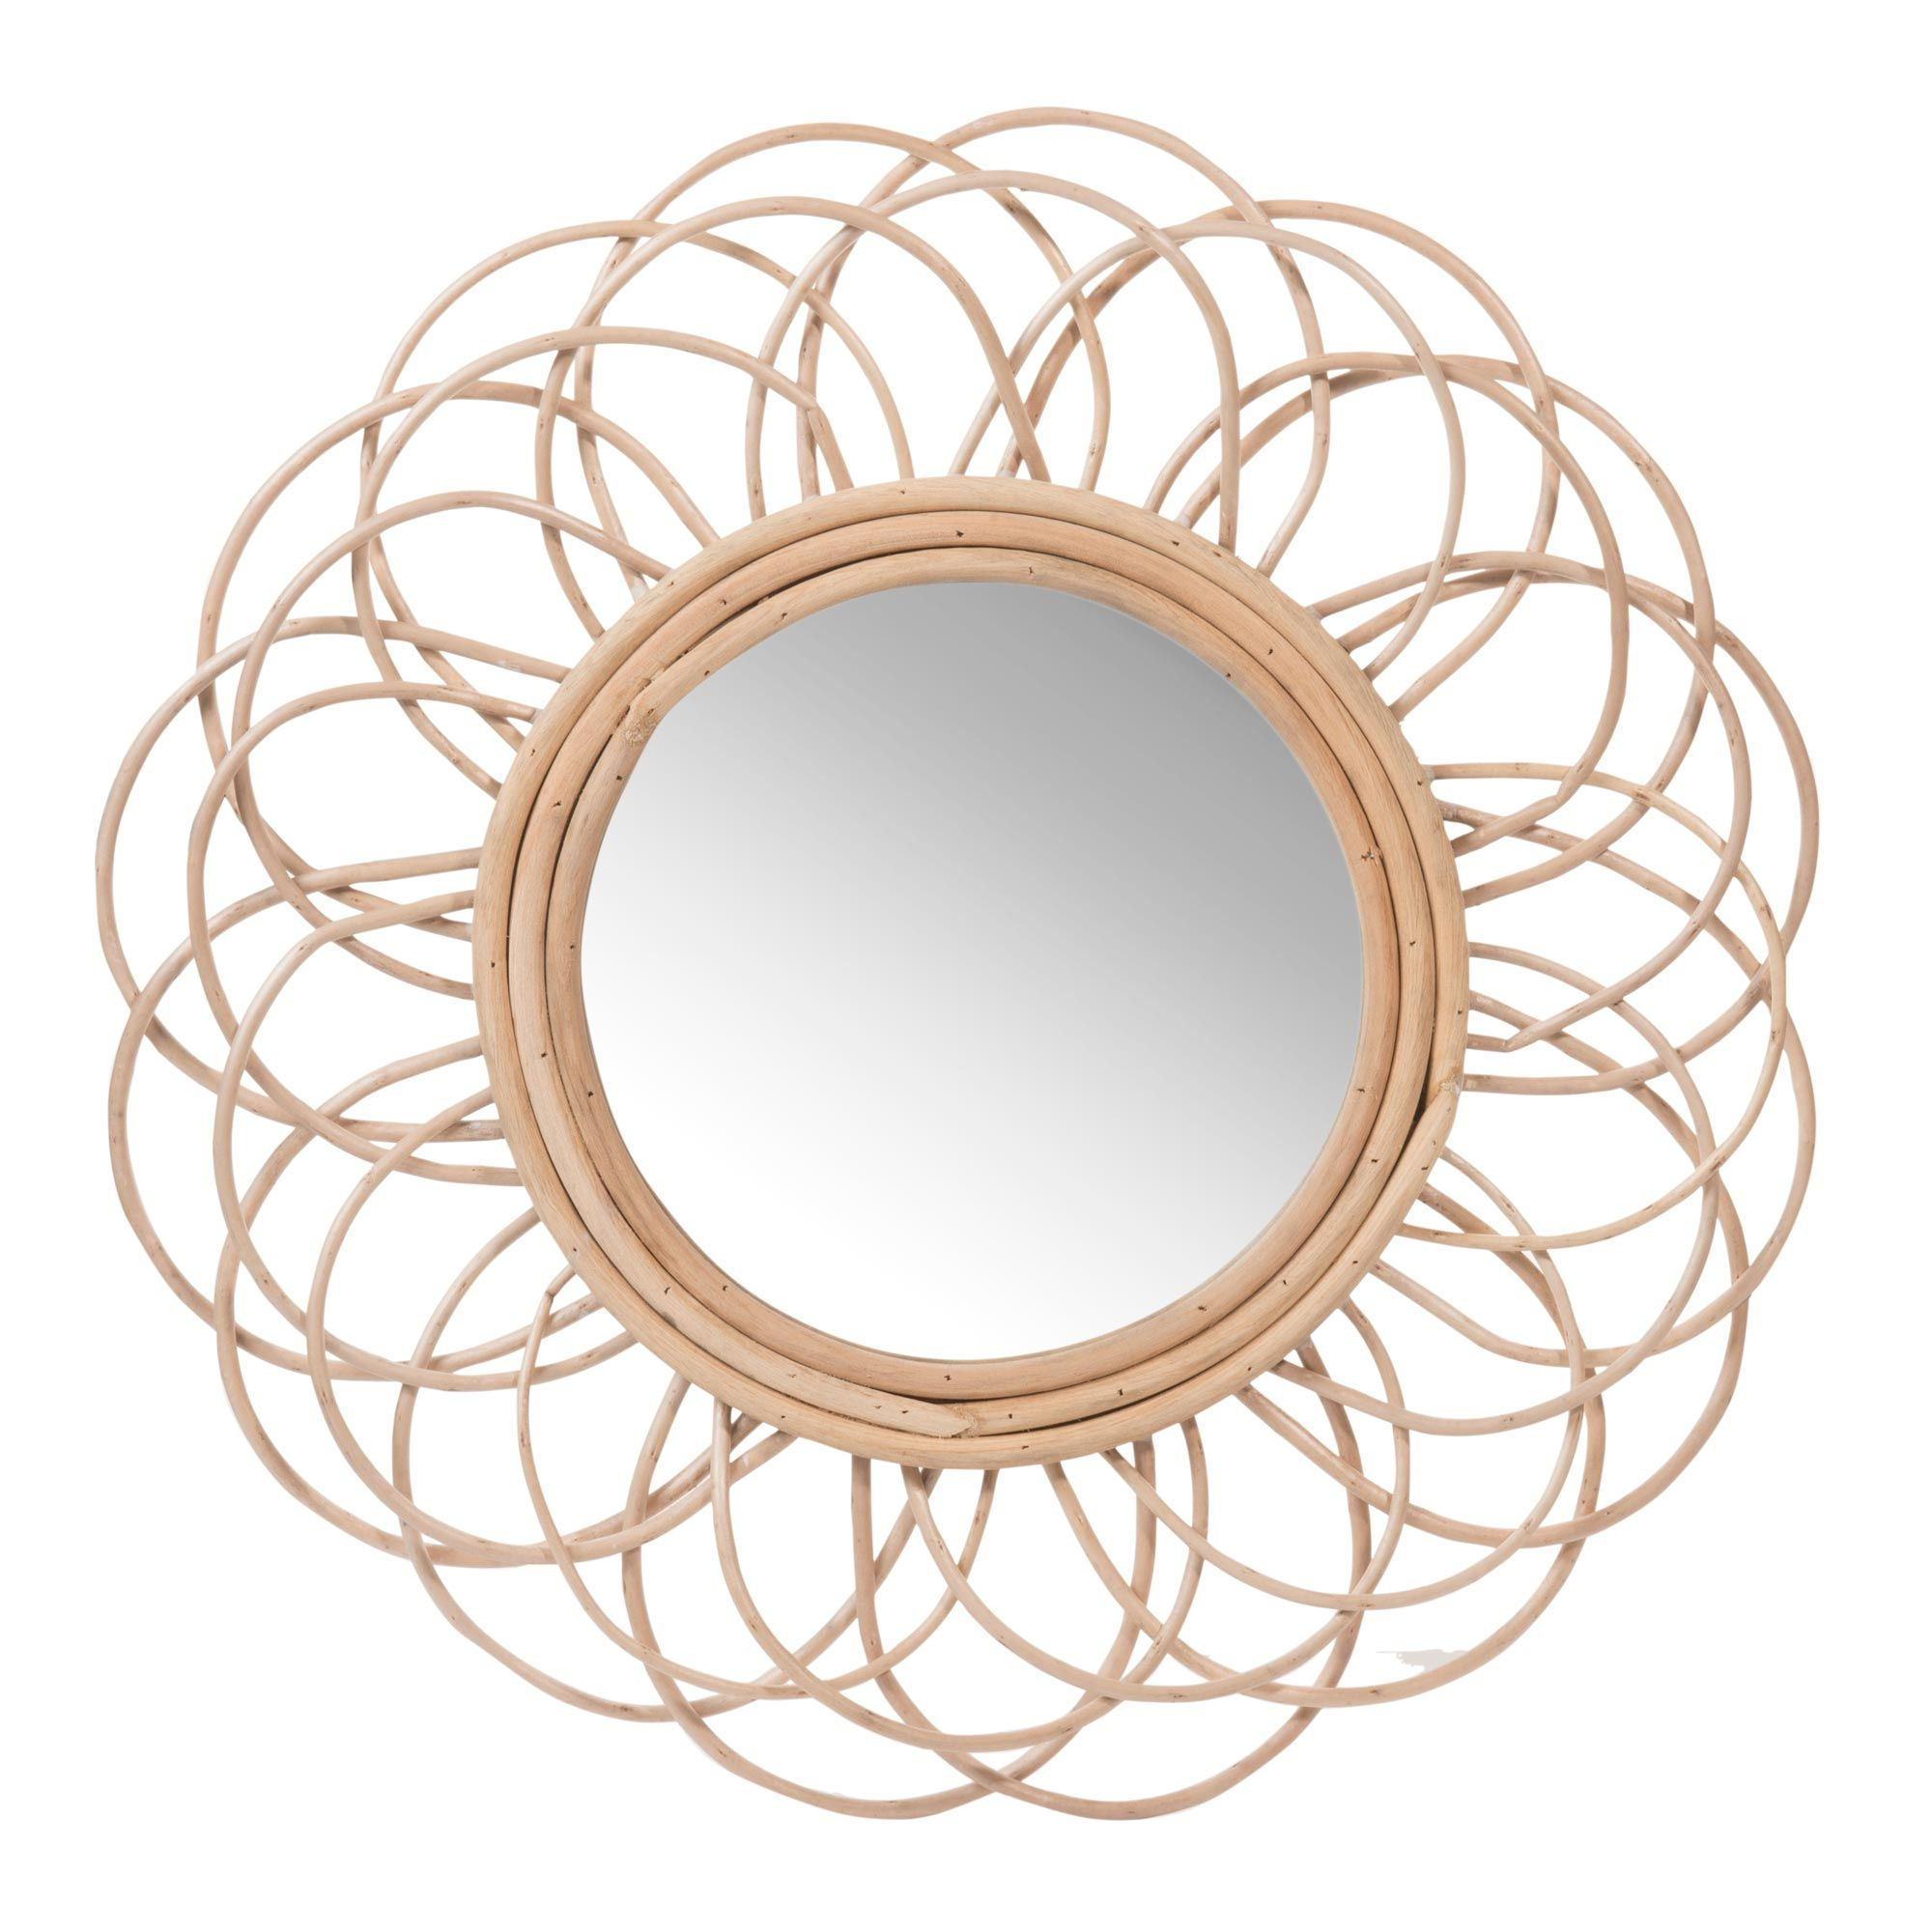 miroir rond en rotin d 50 cm vintage maisons du monde. Black Bedroom Furniture Sets. Home Design Ideas